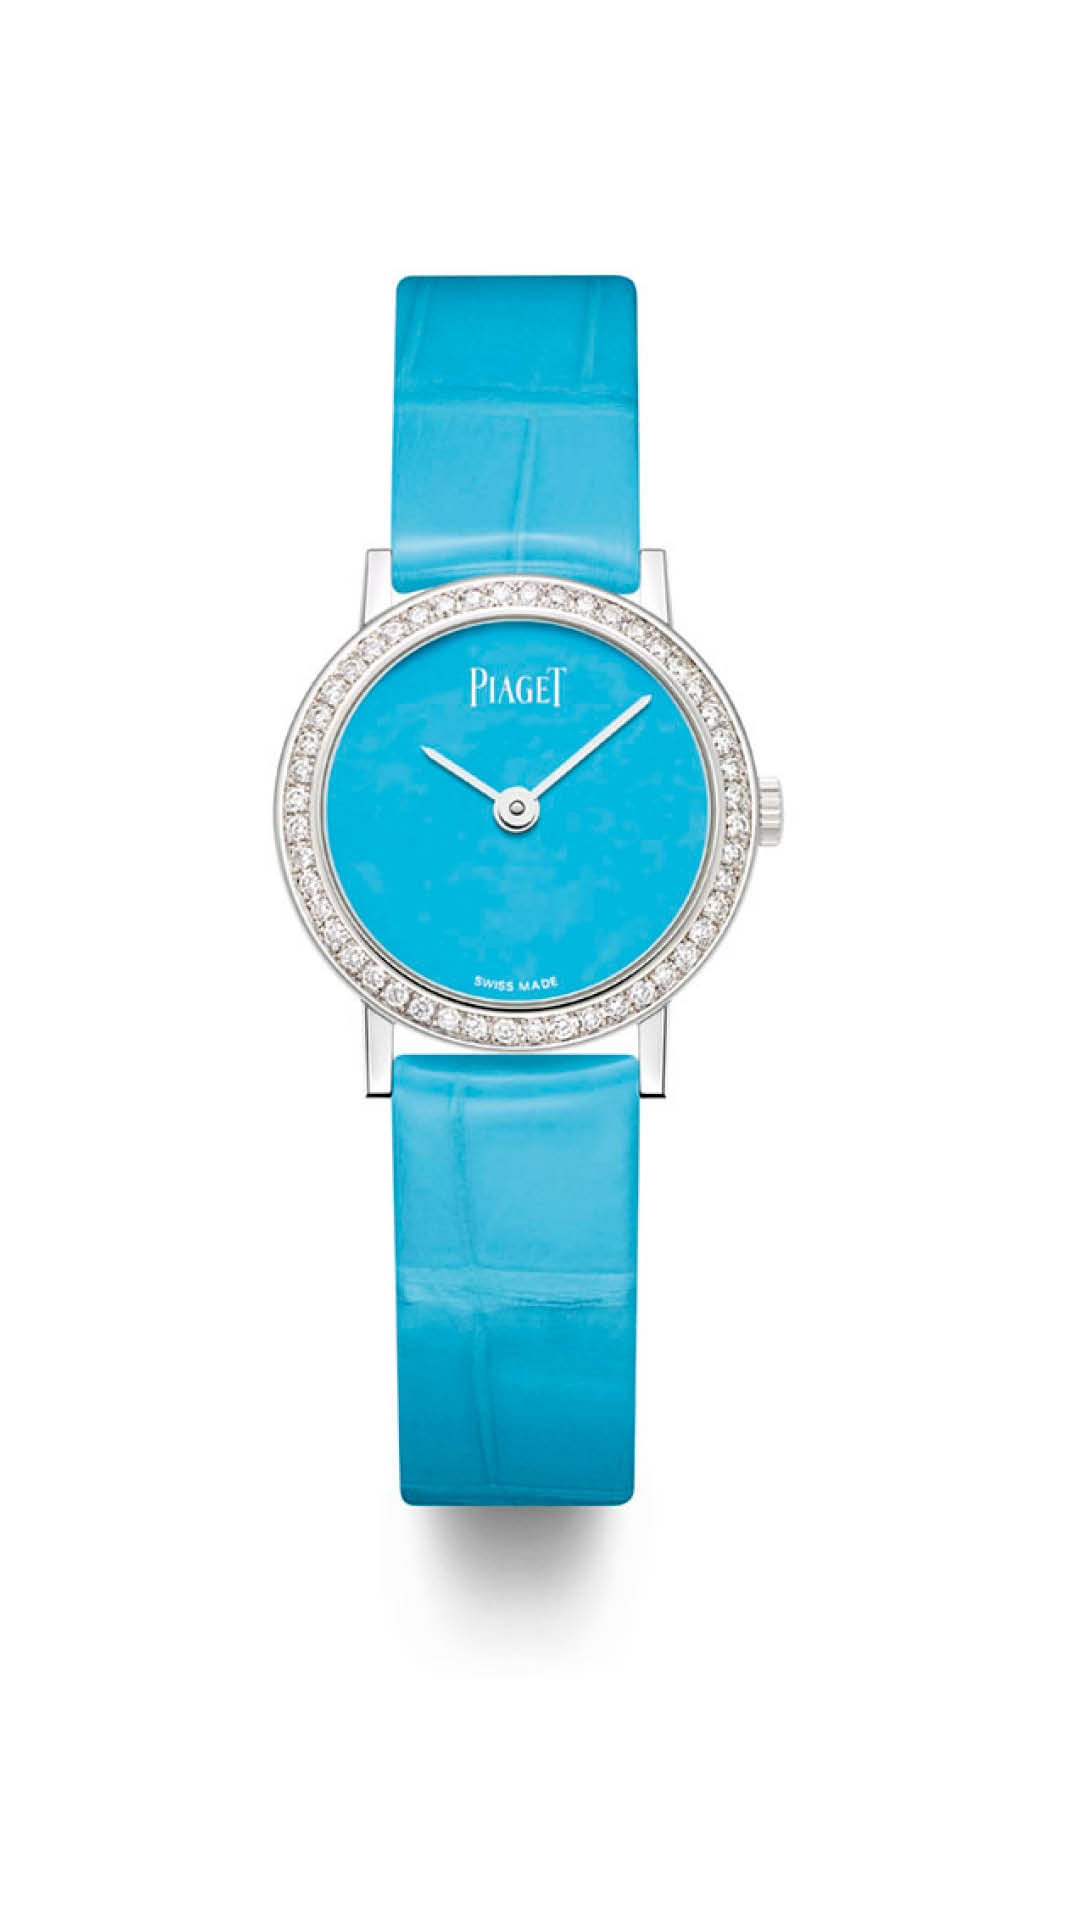 Piaget-Summer-Jewels-Turquoise-Watch